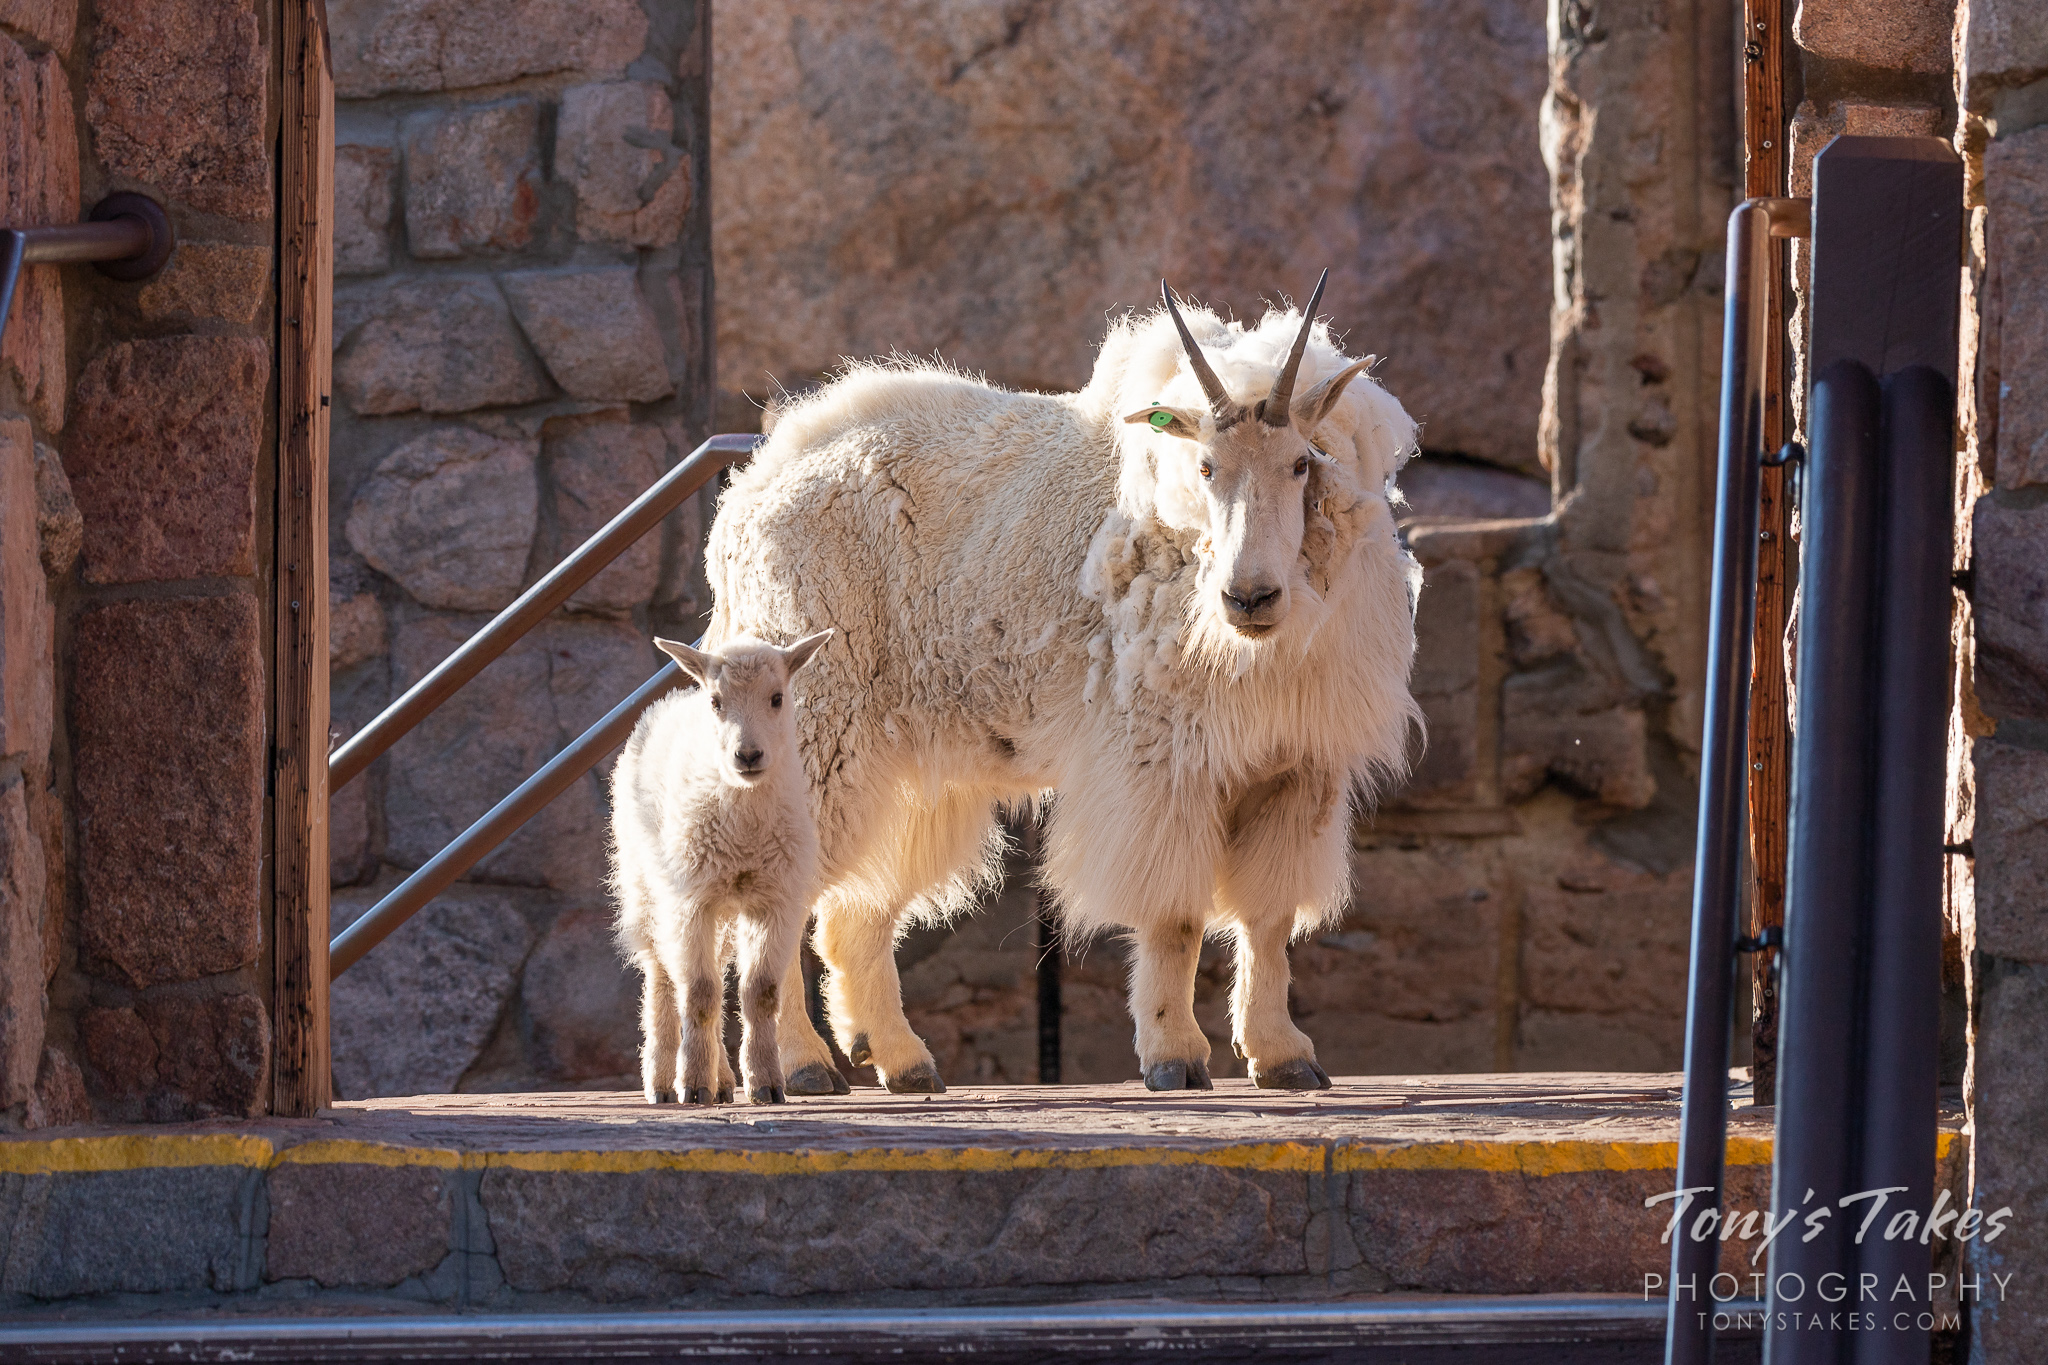 A Mountain Goat nanny and kid guard the remnants of the Crest House on top of Mount Evans in Colorado. (© Tony's Takes)